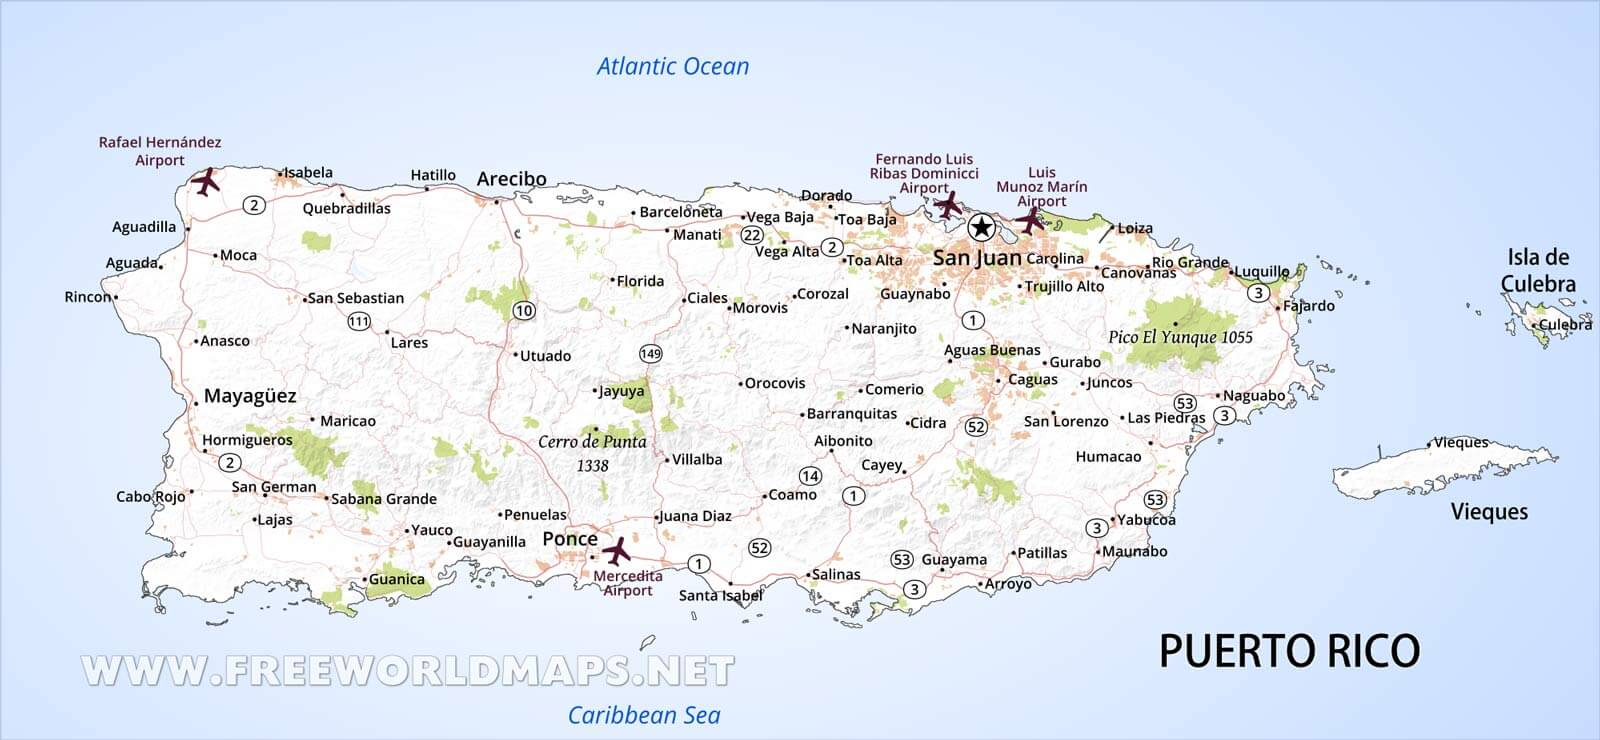 Puerto Rico Map Geographical Features Of Puerto Rico Of The - Puerto rico maps